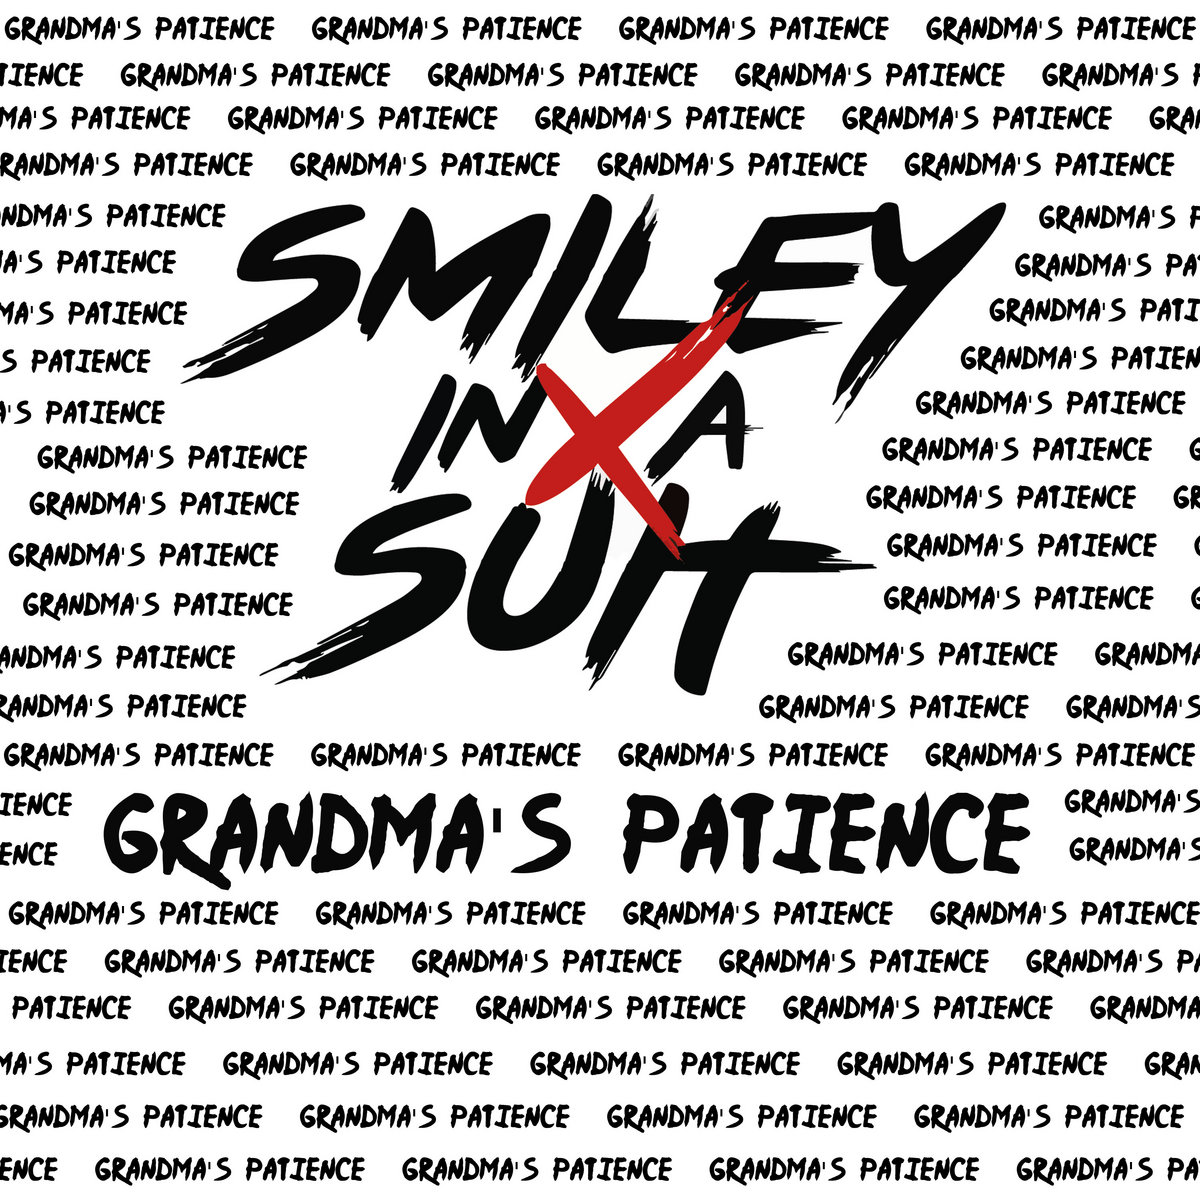 www.facebook.com/Smiley-In-A-Suit-606382462833549